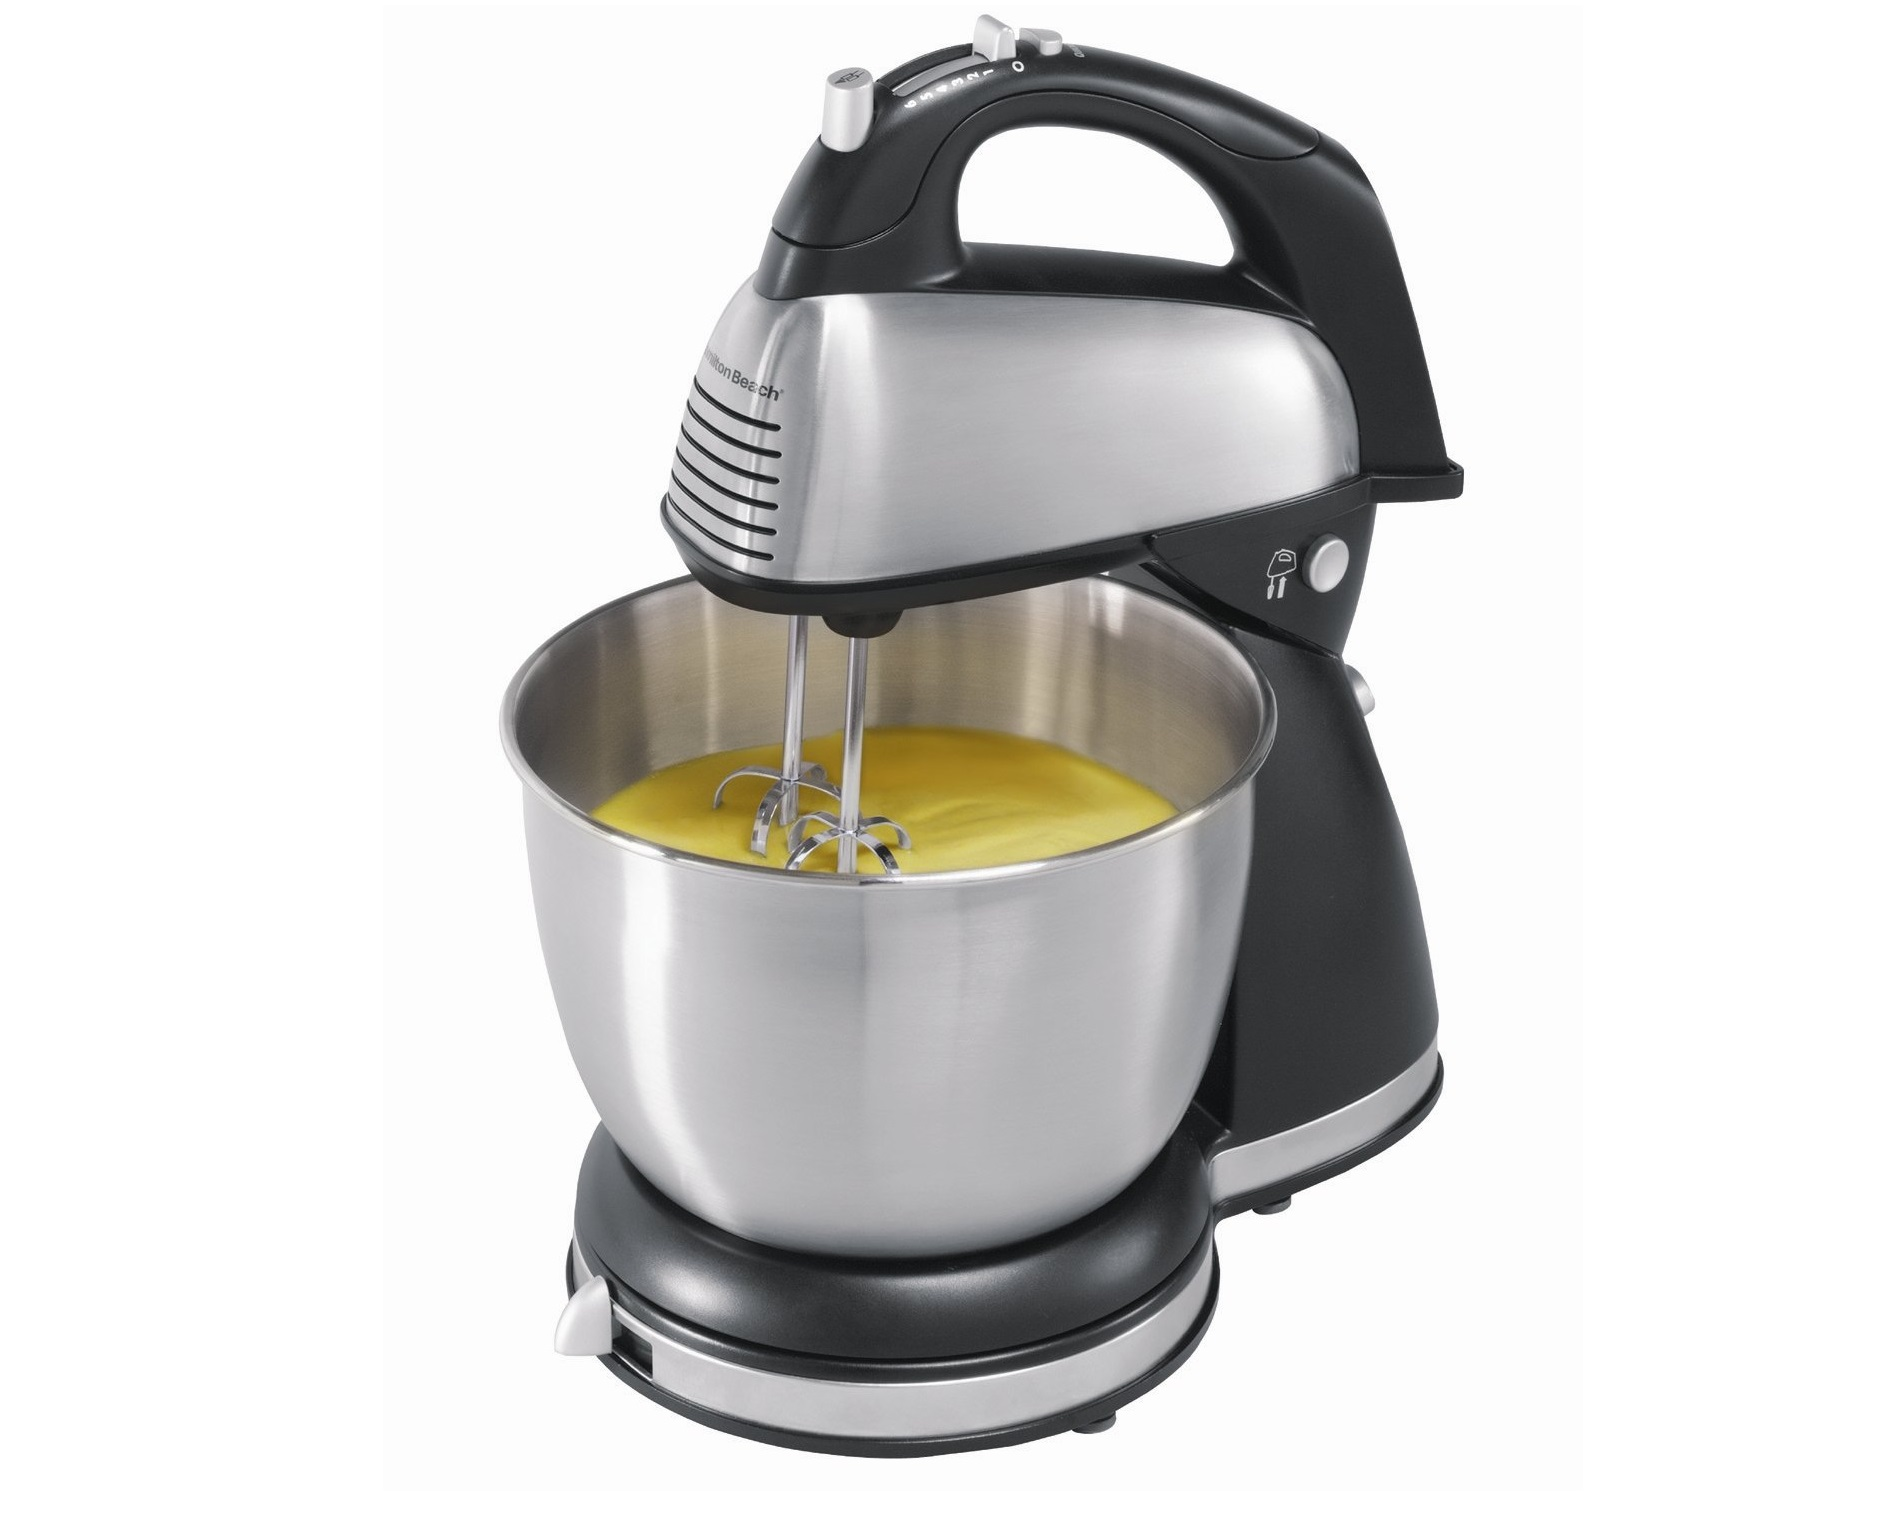 Top 10 Best Stand Mixers of 2018